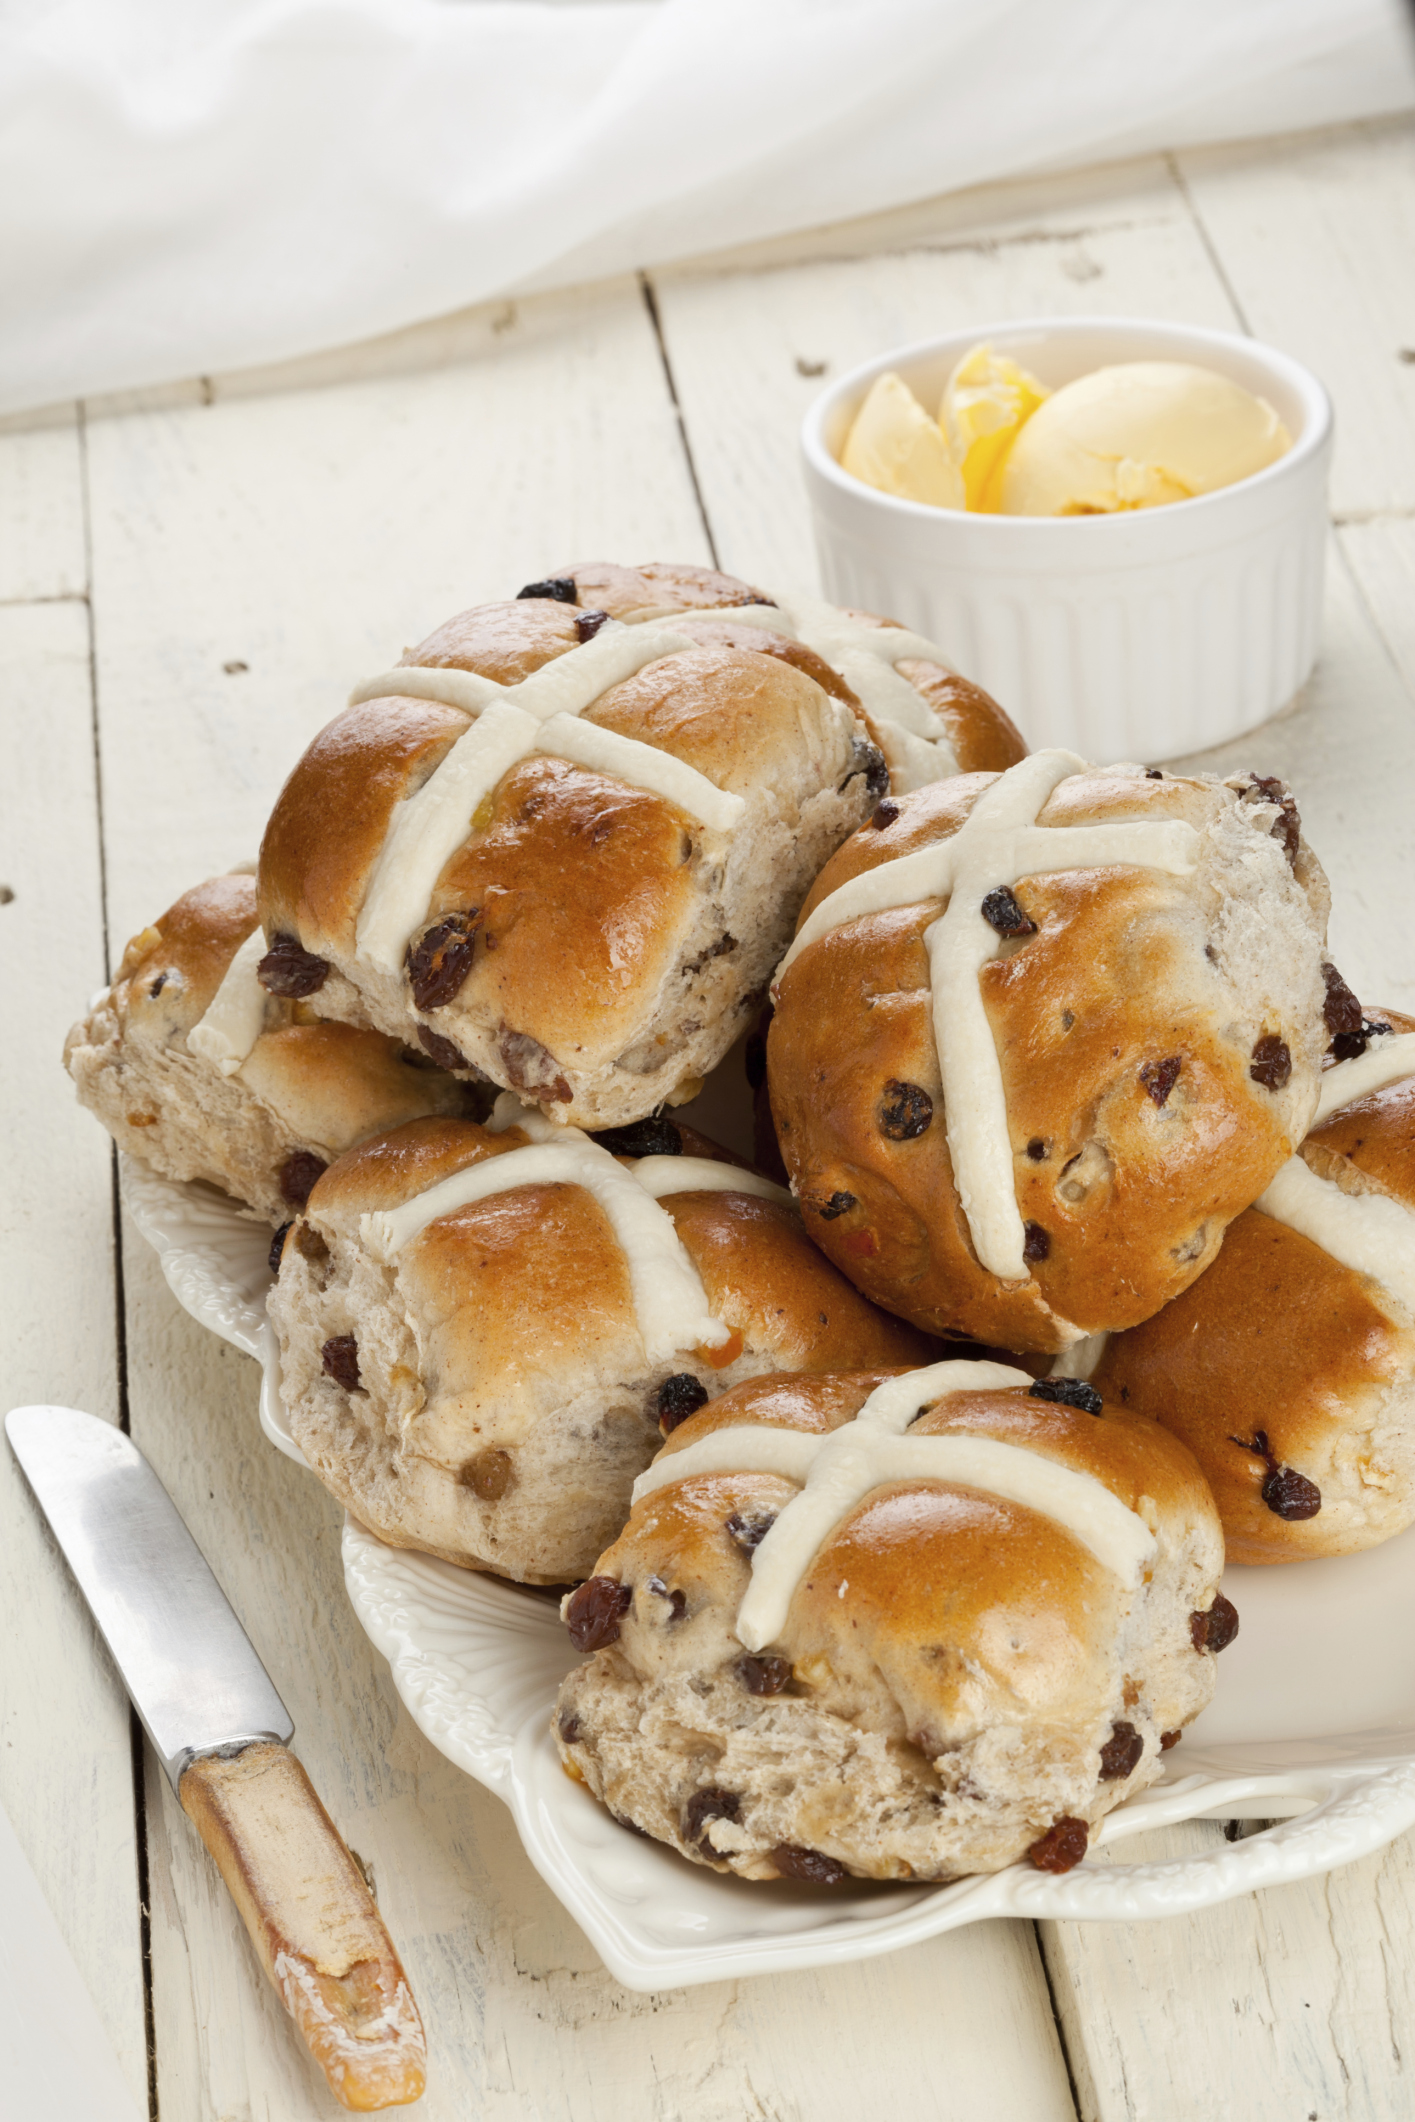 25 Delicious Free-From Easter Recipes